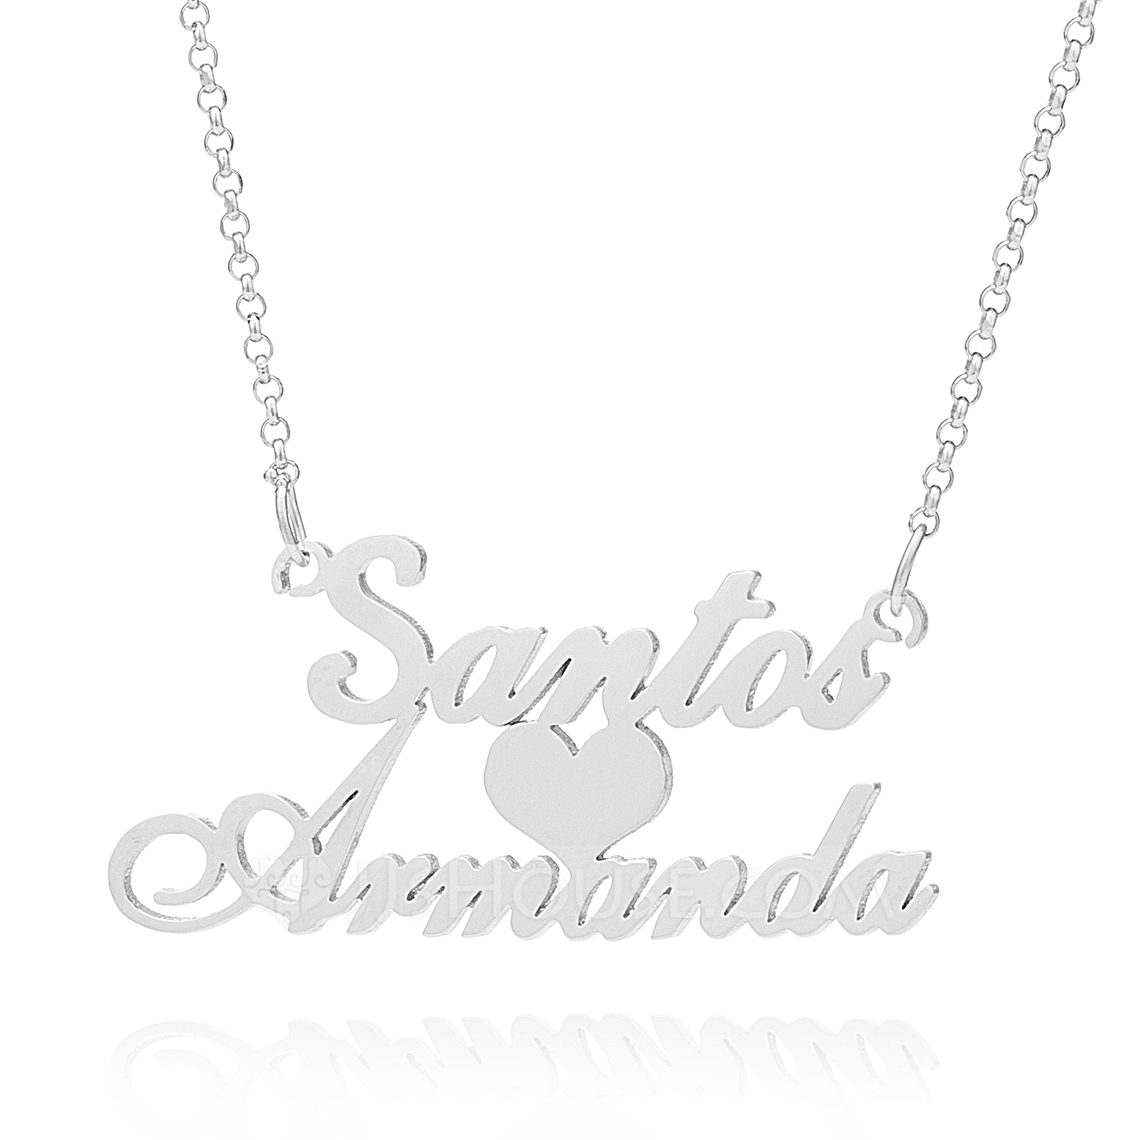 Custom Sterling Silver Two Name Necklace With Heart - Christmas Gifts